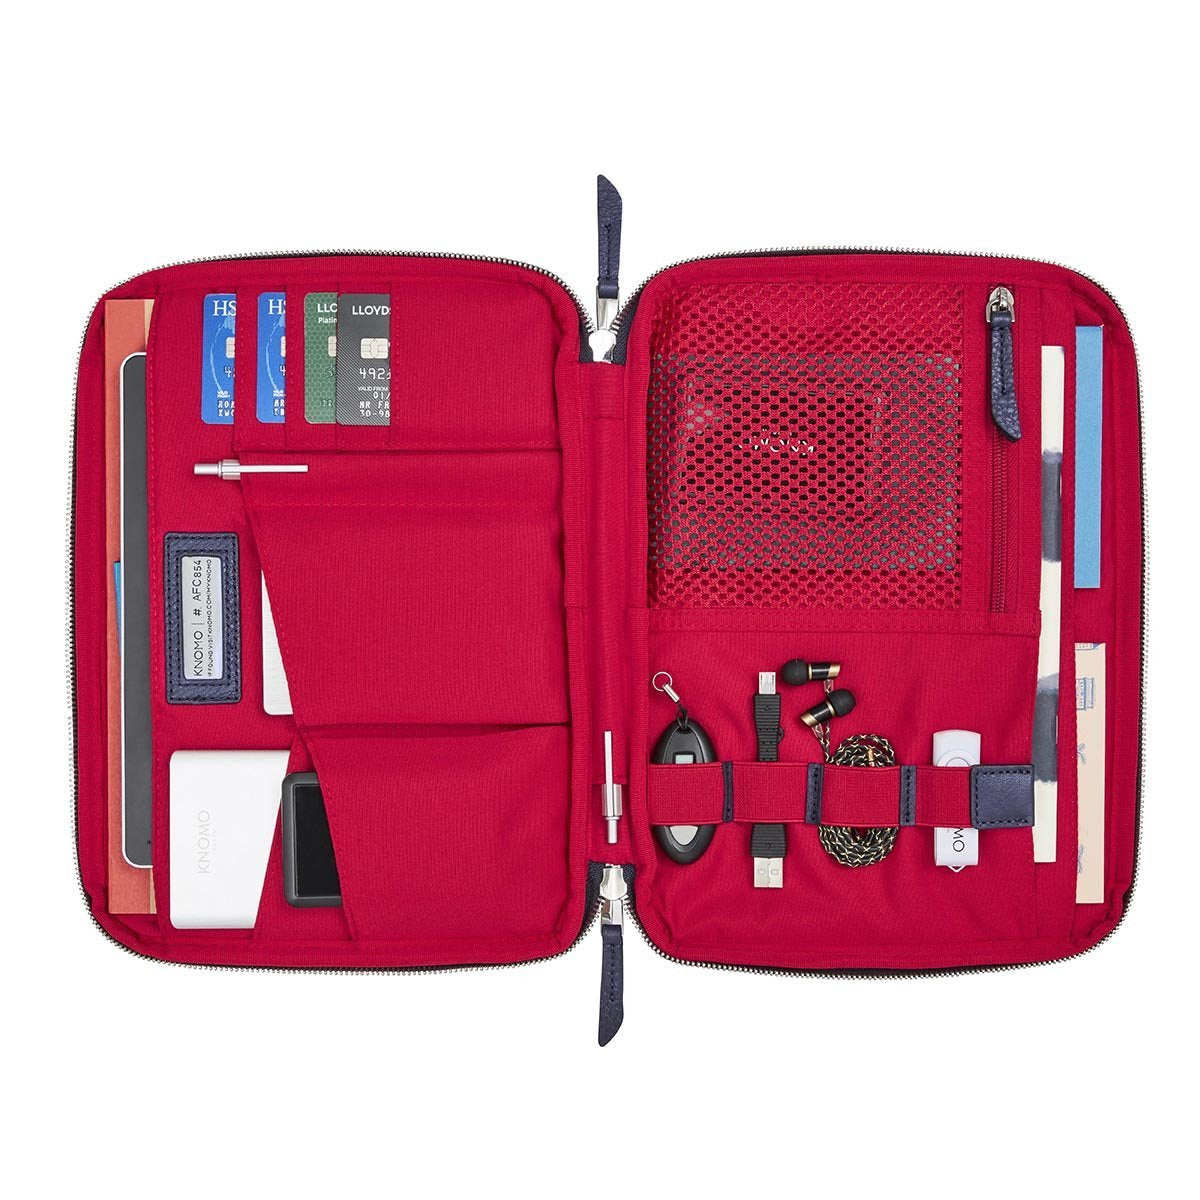 "Knomad X-Body Organiser - 10.5"" Tech Organiser For Everyday -  